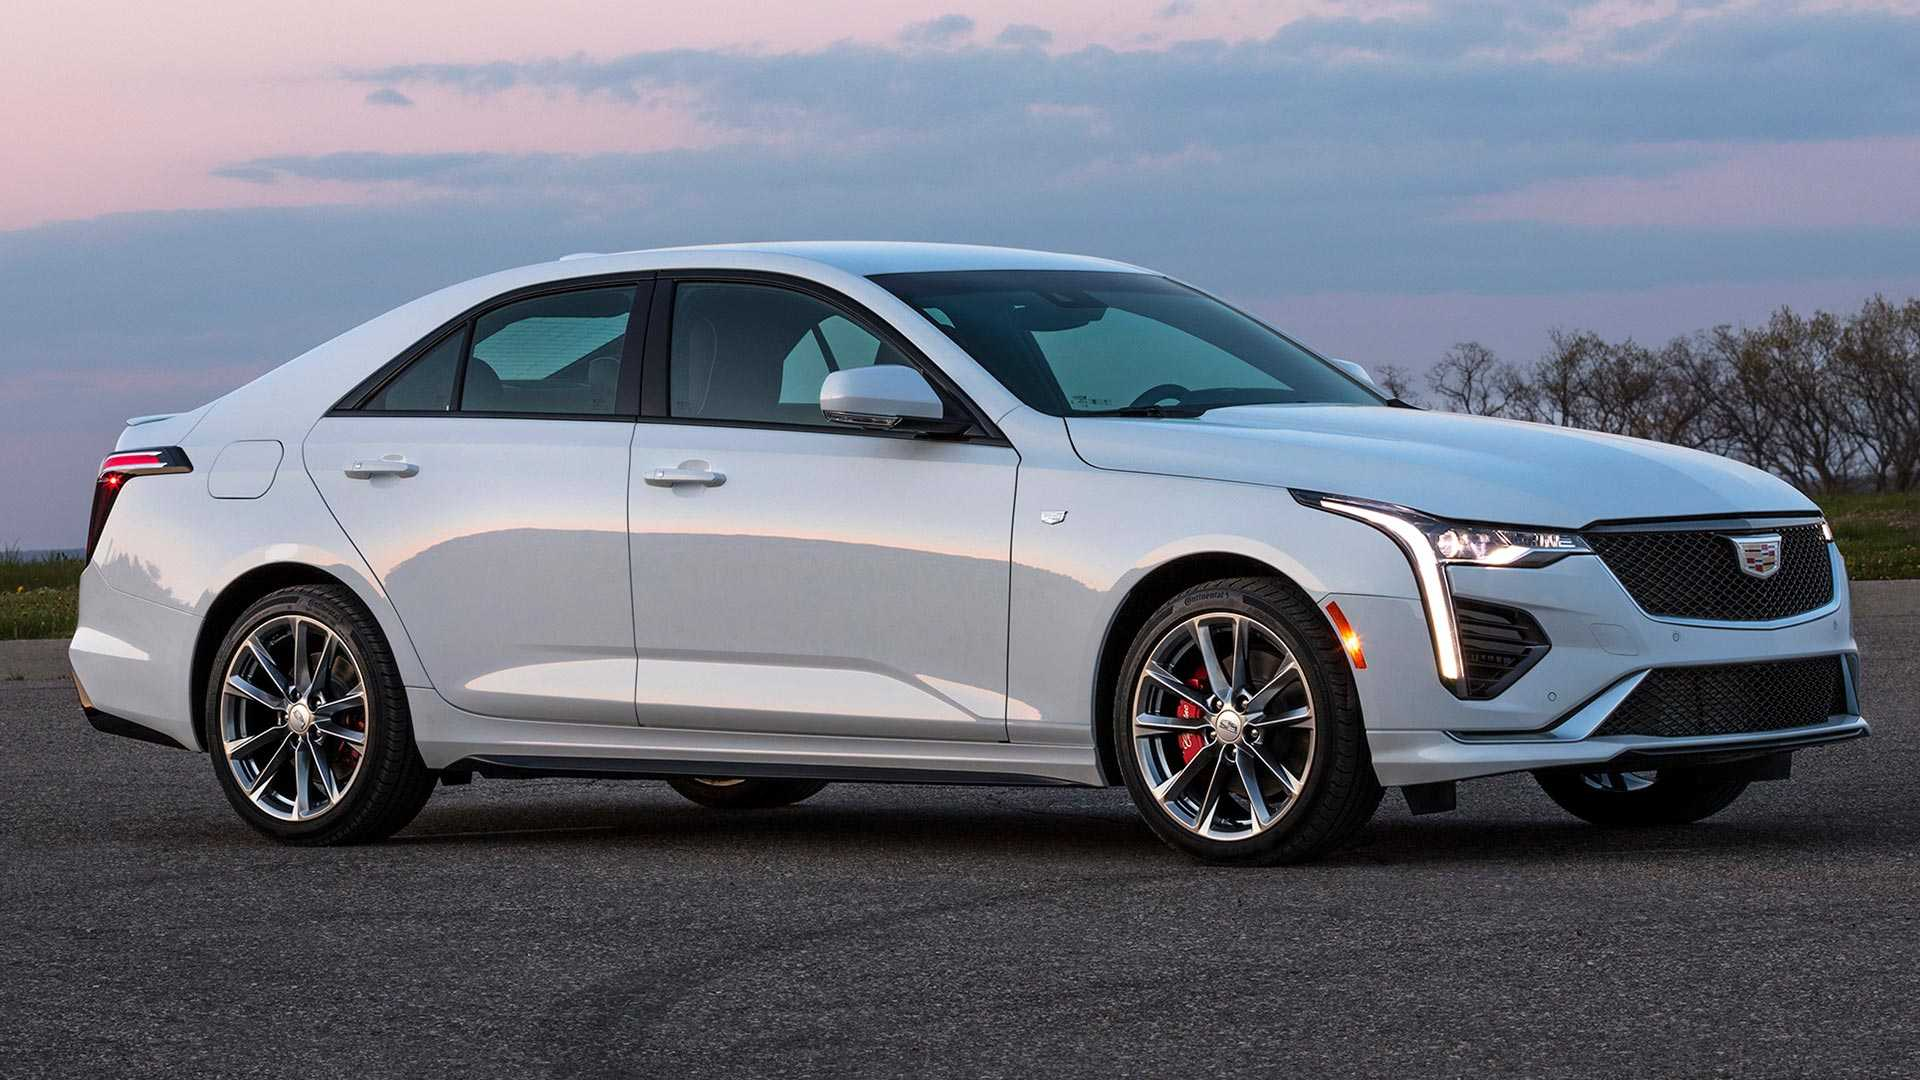 2020 Cadillac Ct4 Arriving With 237 Hp Super Cruise Coming